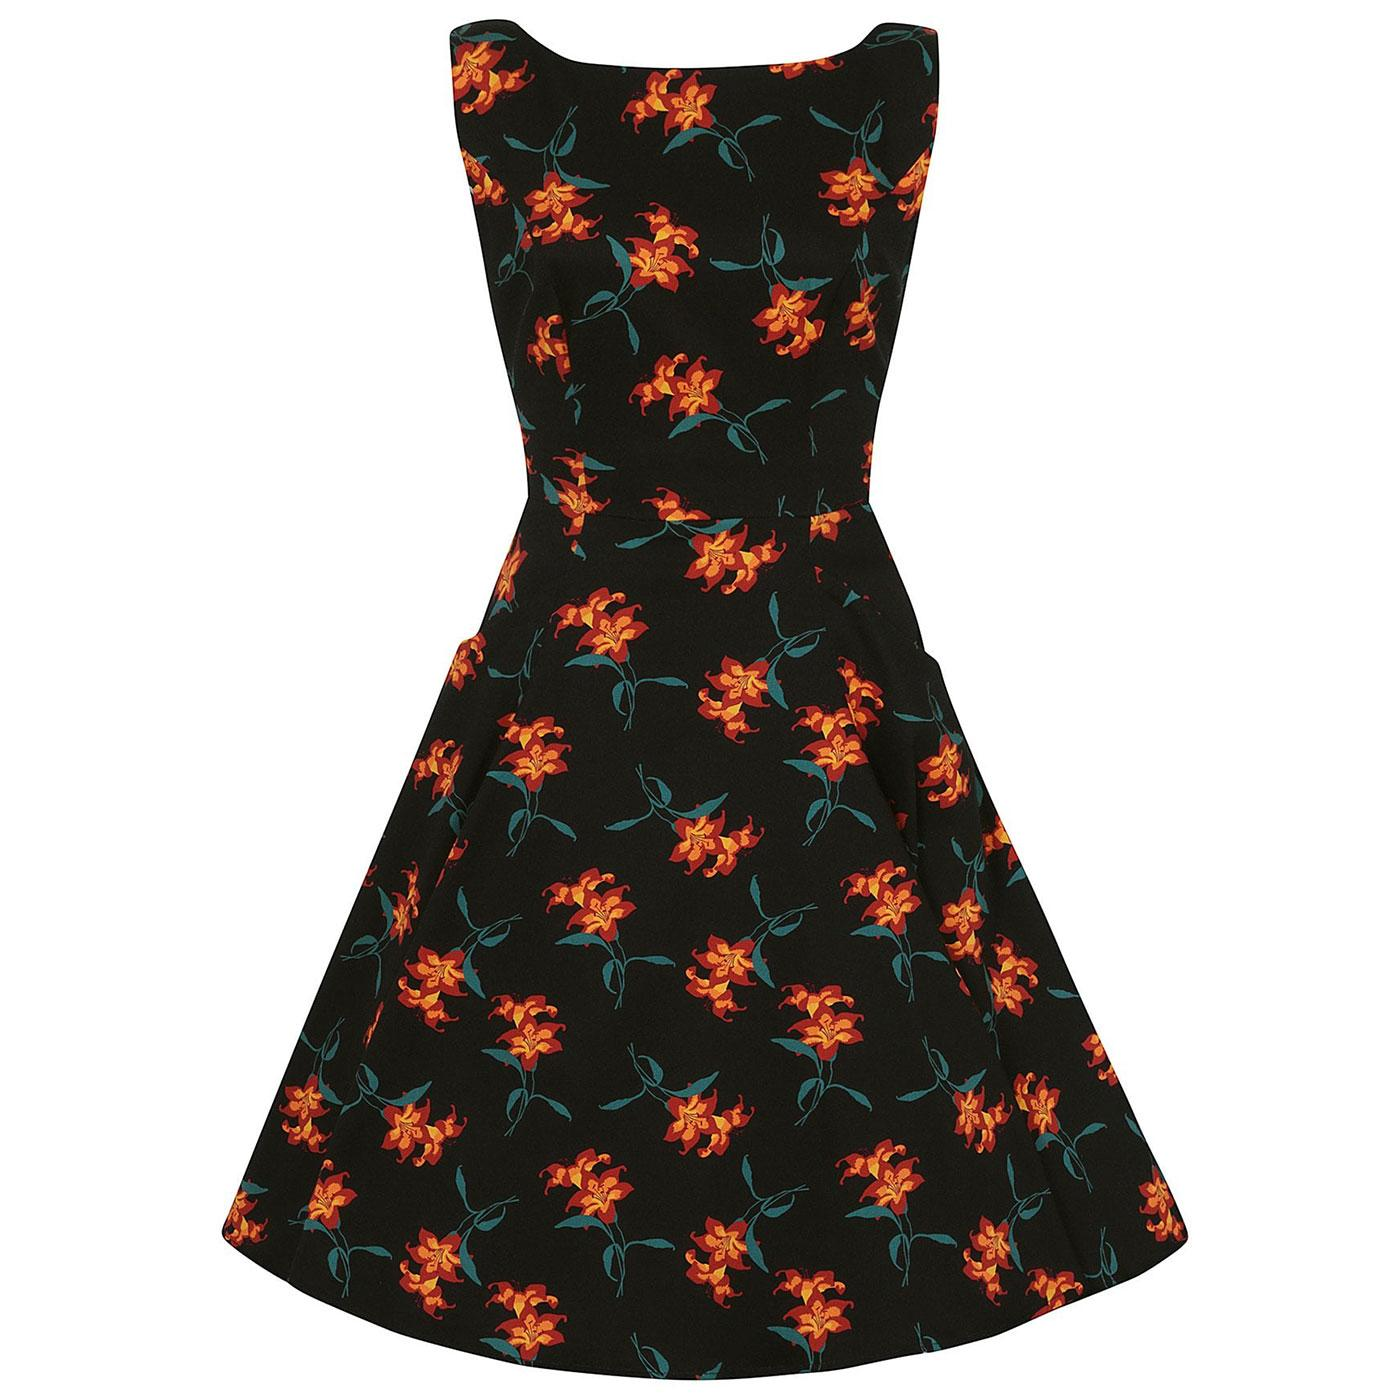 Hepburn COLLECTIF Retro 50s Dress in Midnight Lily